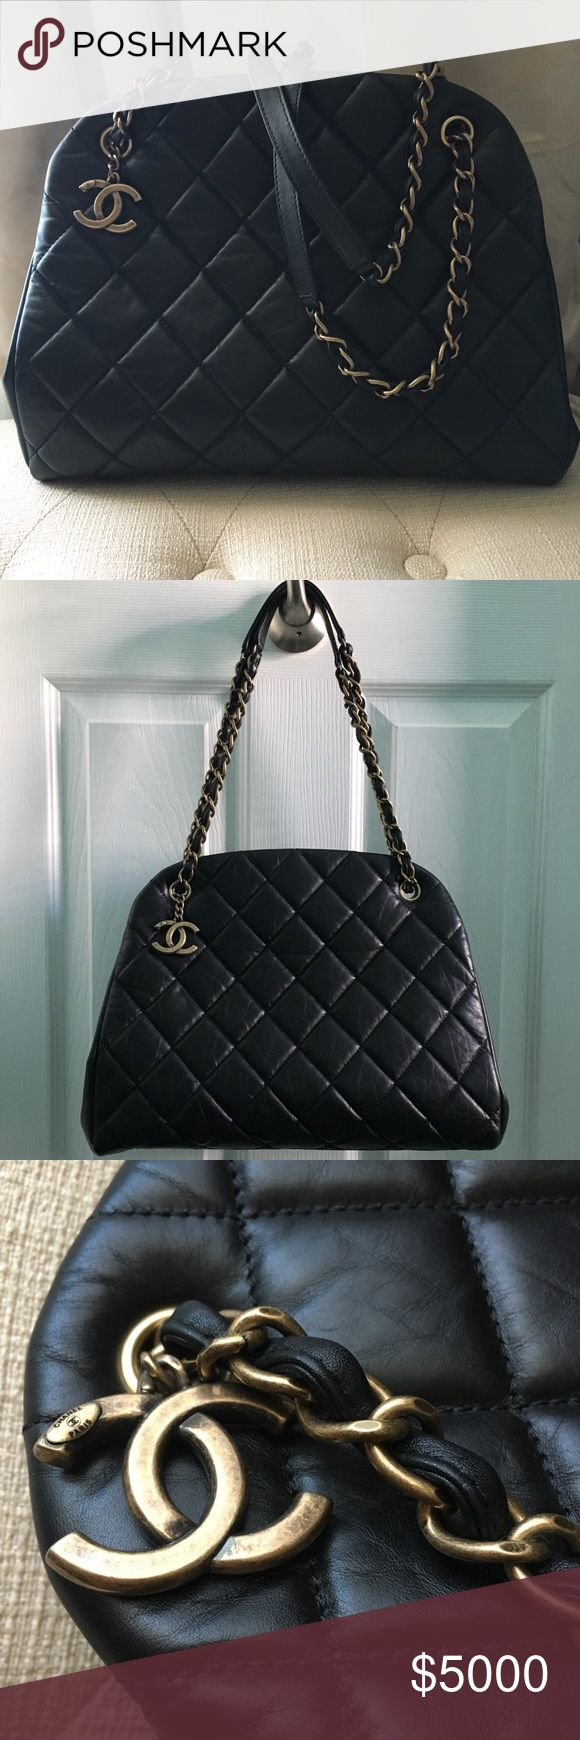 New Chanel Bowling Bag Black Quilted Gold Chain Authentic Chanel Mademoiselle Bowling Bag in large size purchased from Chanel boutique. I never got a chance to use the beautiful bag but held on to it with intentions to because it's just so beautiful! In perfect condition. Stored in a smoke and pet free home. Comes with authenticity card and dust bag. I still have the box but please ask first if you must have it. It's just been sitting in my closet. CHANEL Bags Totes